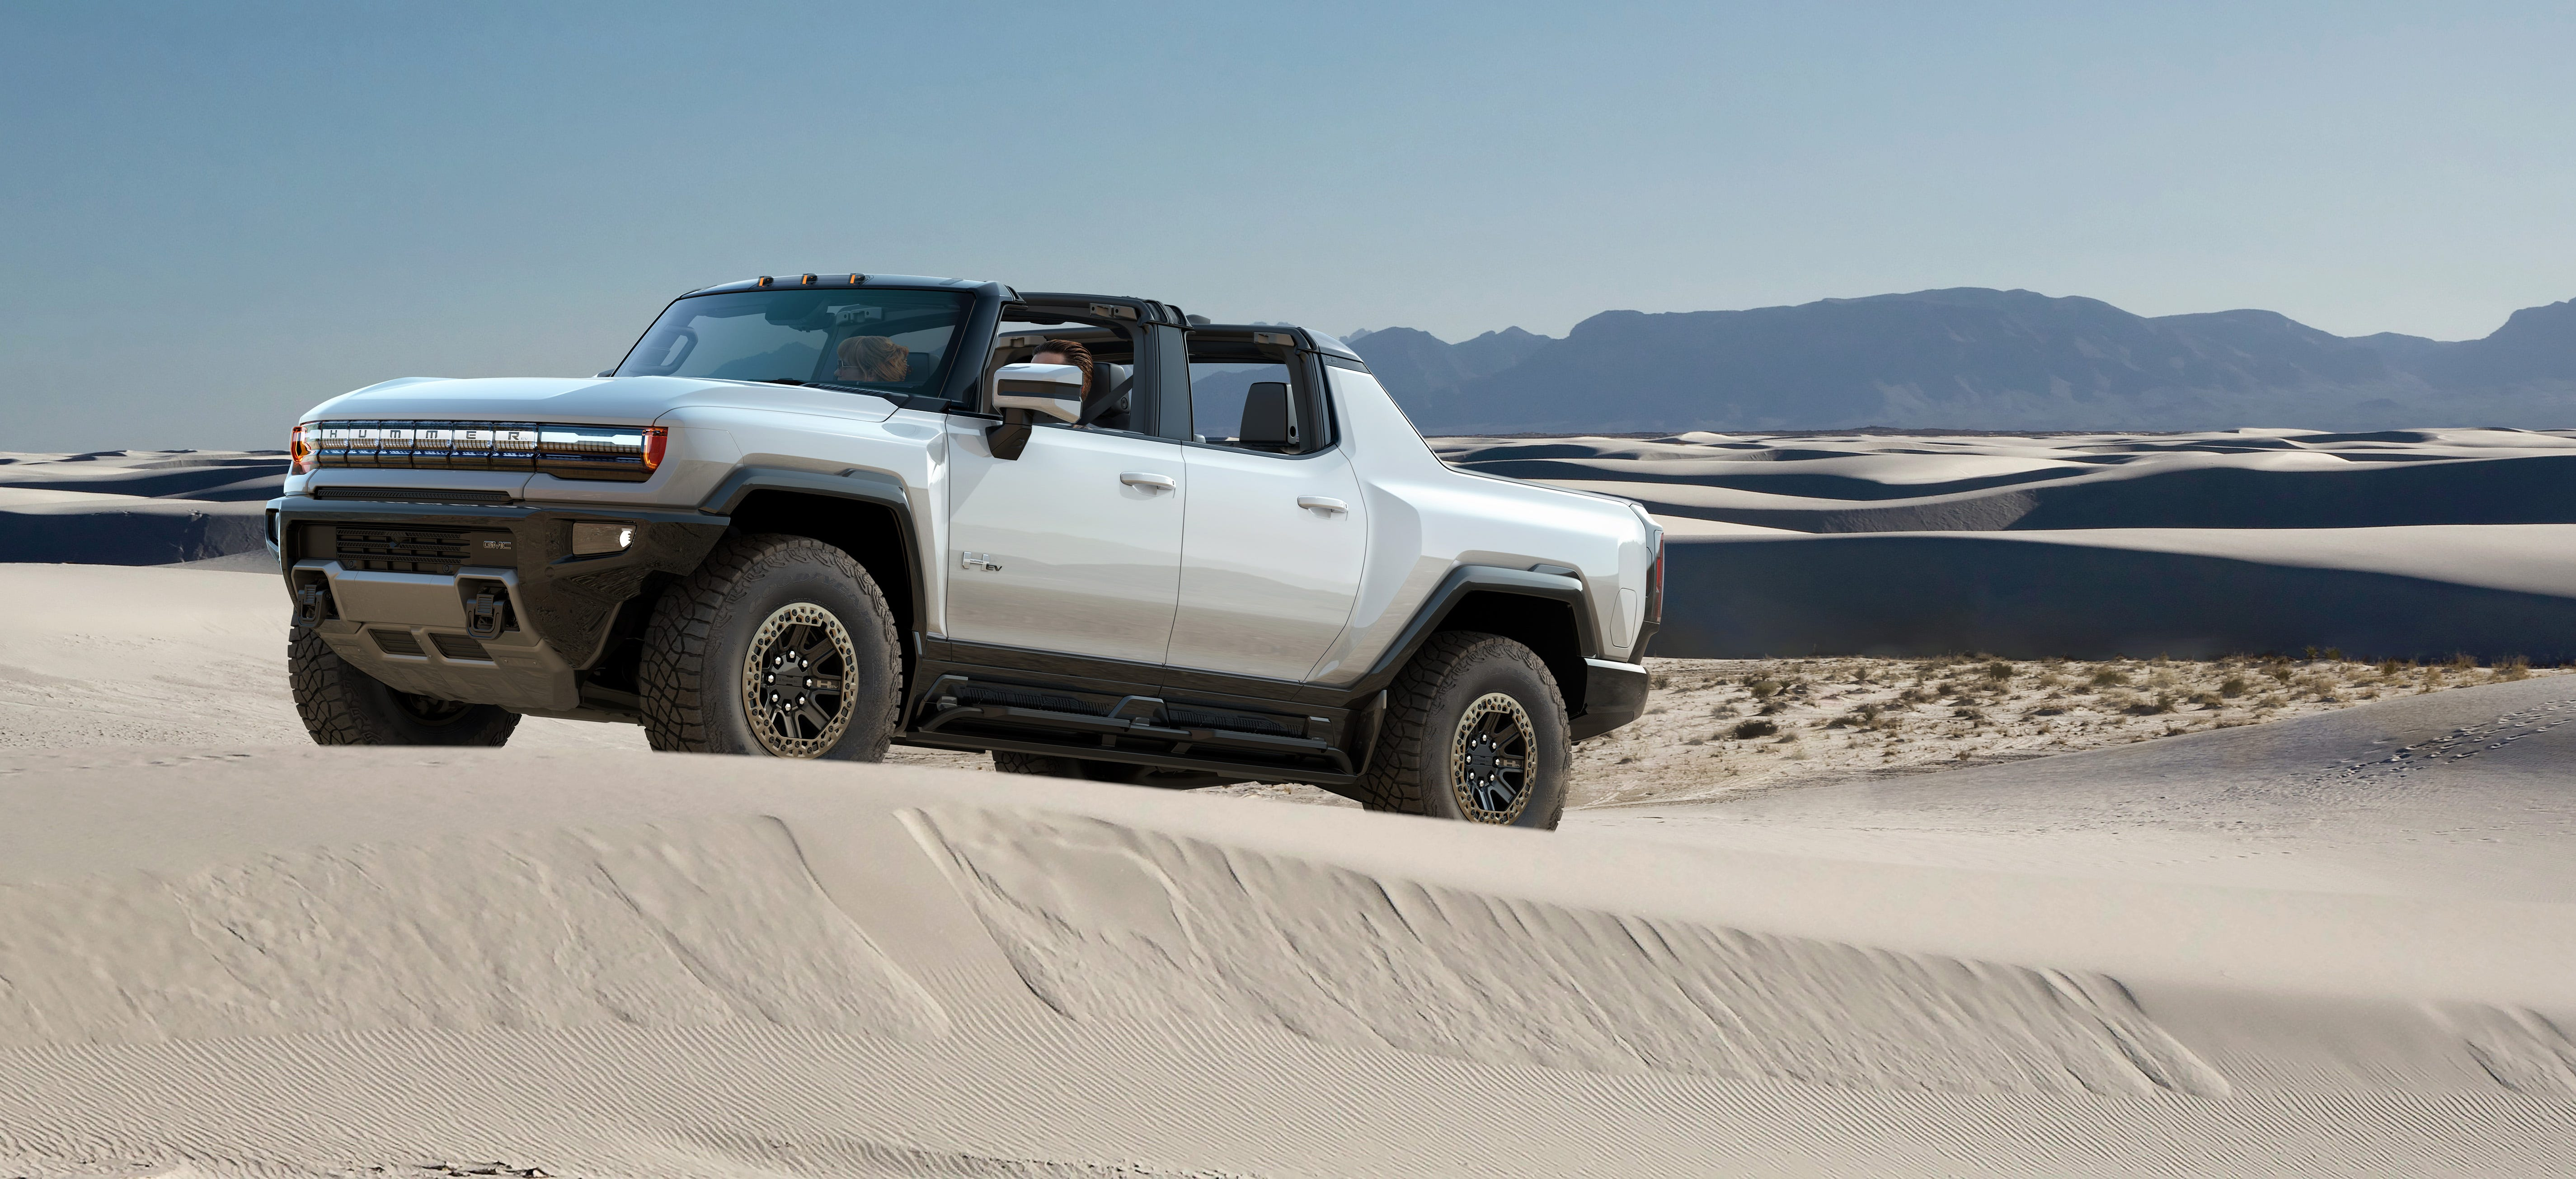 2022 GMC Hummer EV pickup will be a hit for these 4 reasons